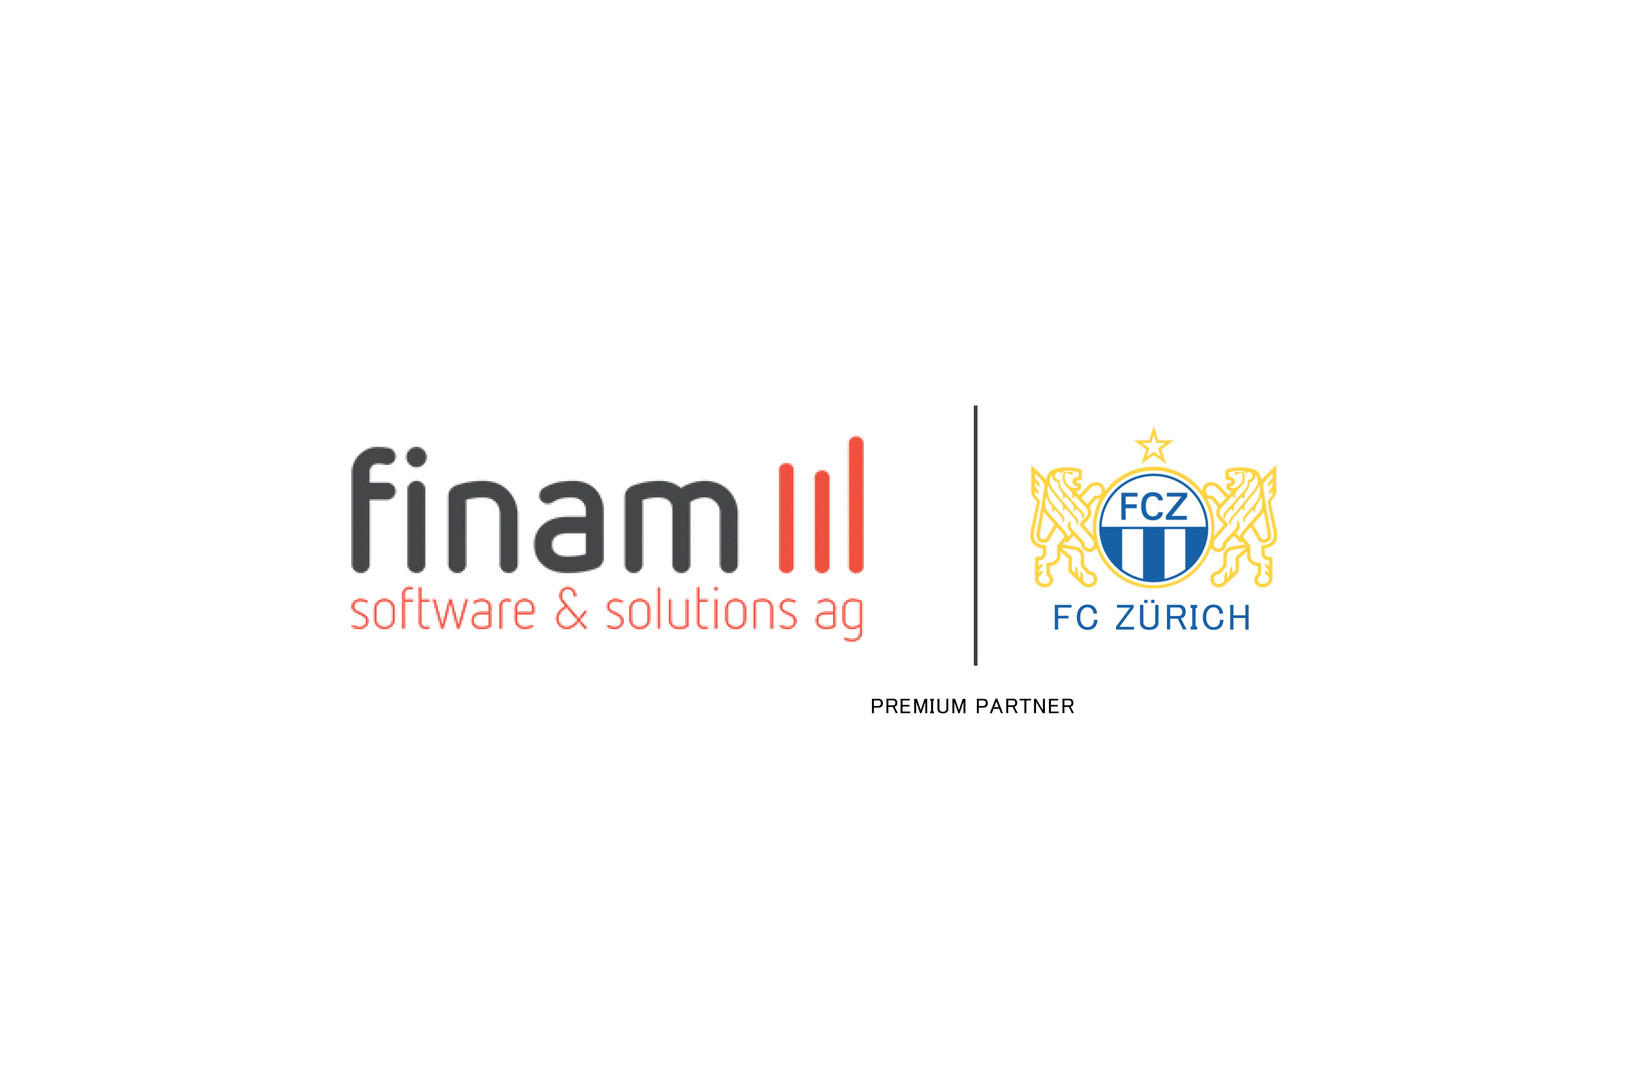 finam software&solutions ag